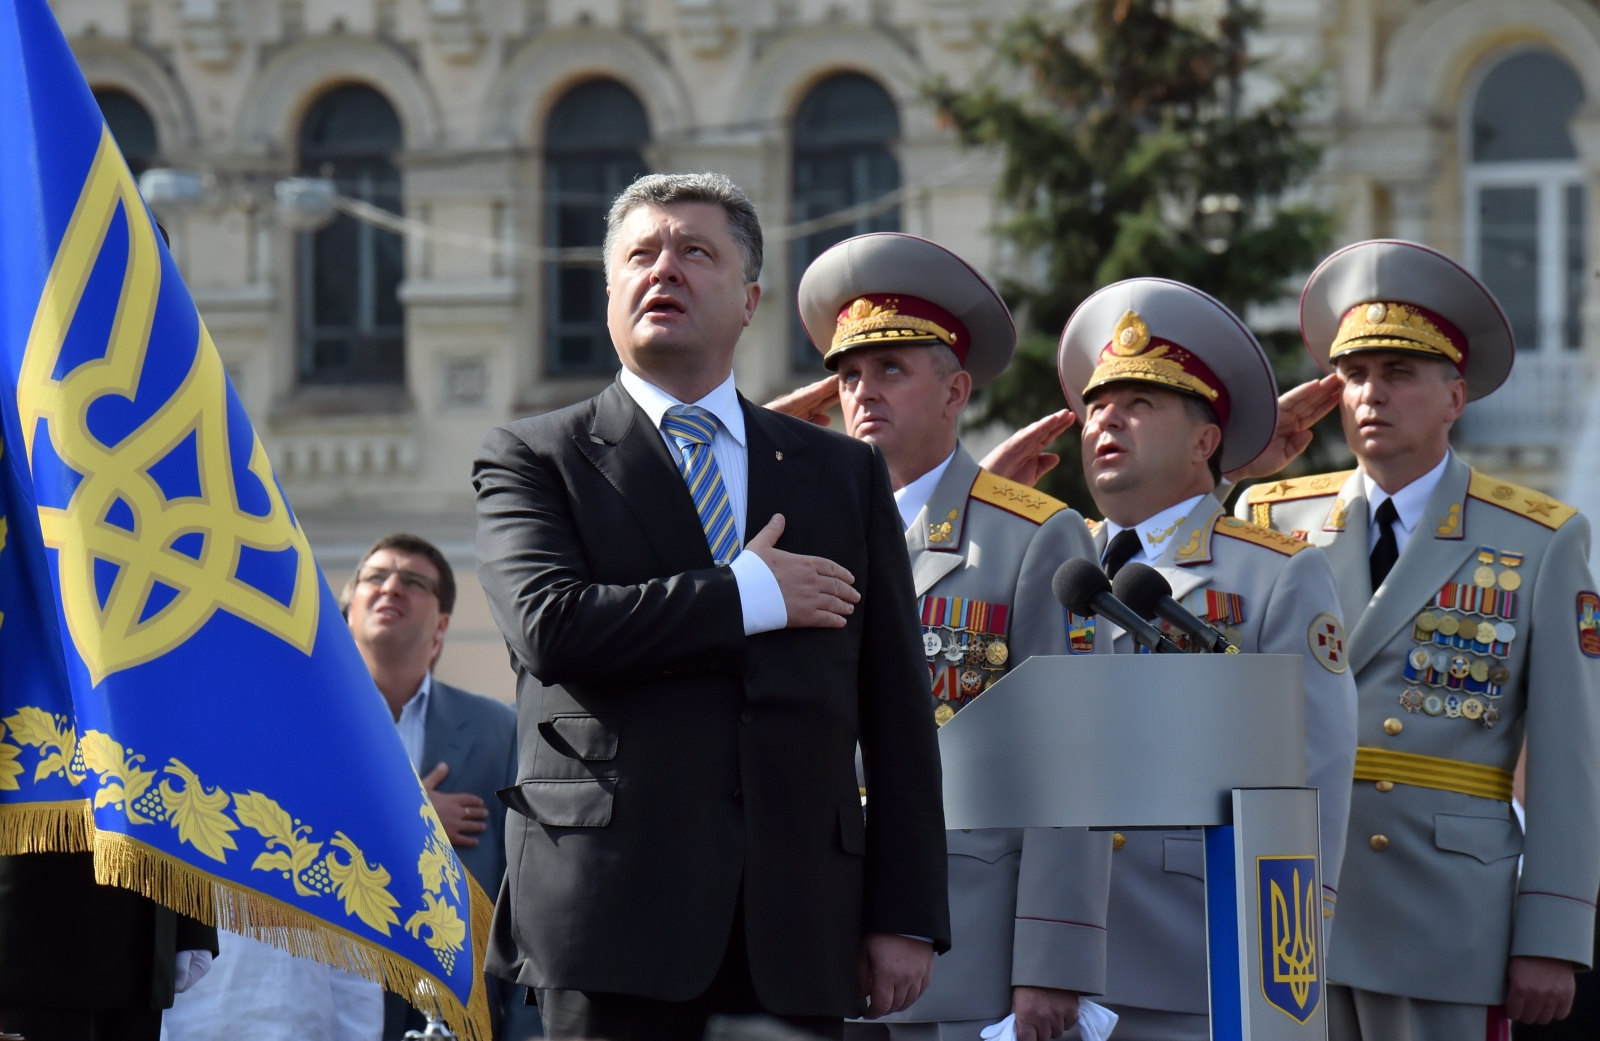 Ukraine Independence Day Parade President Poroshenko